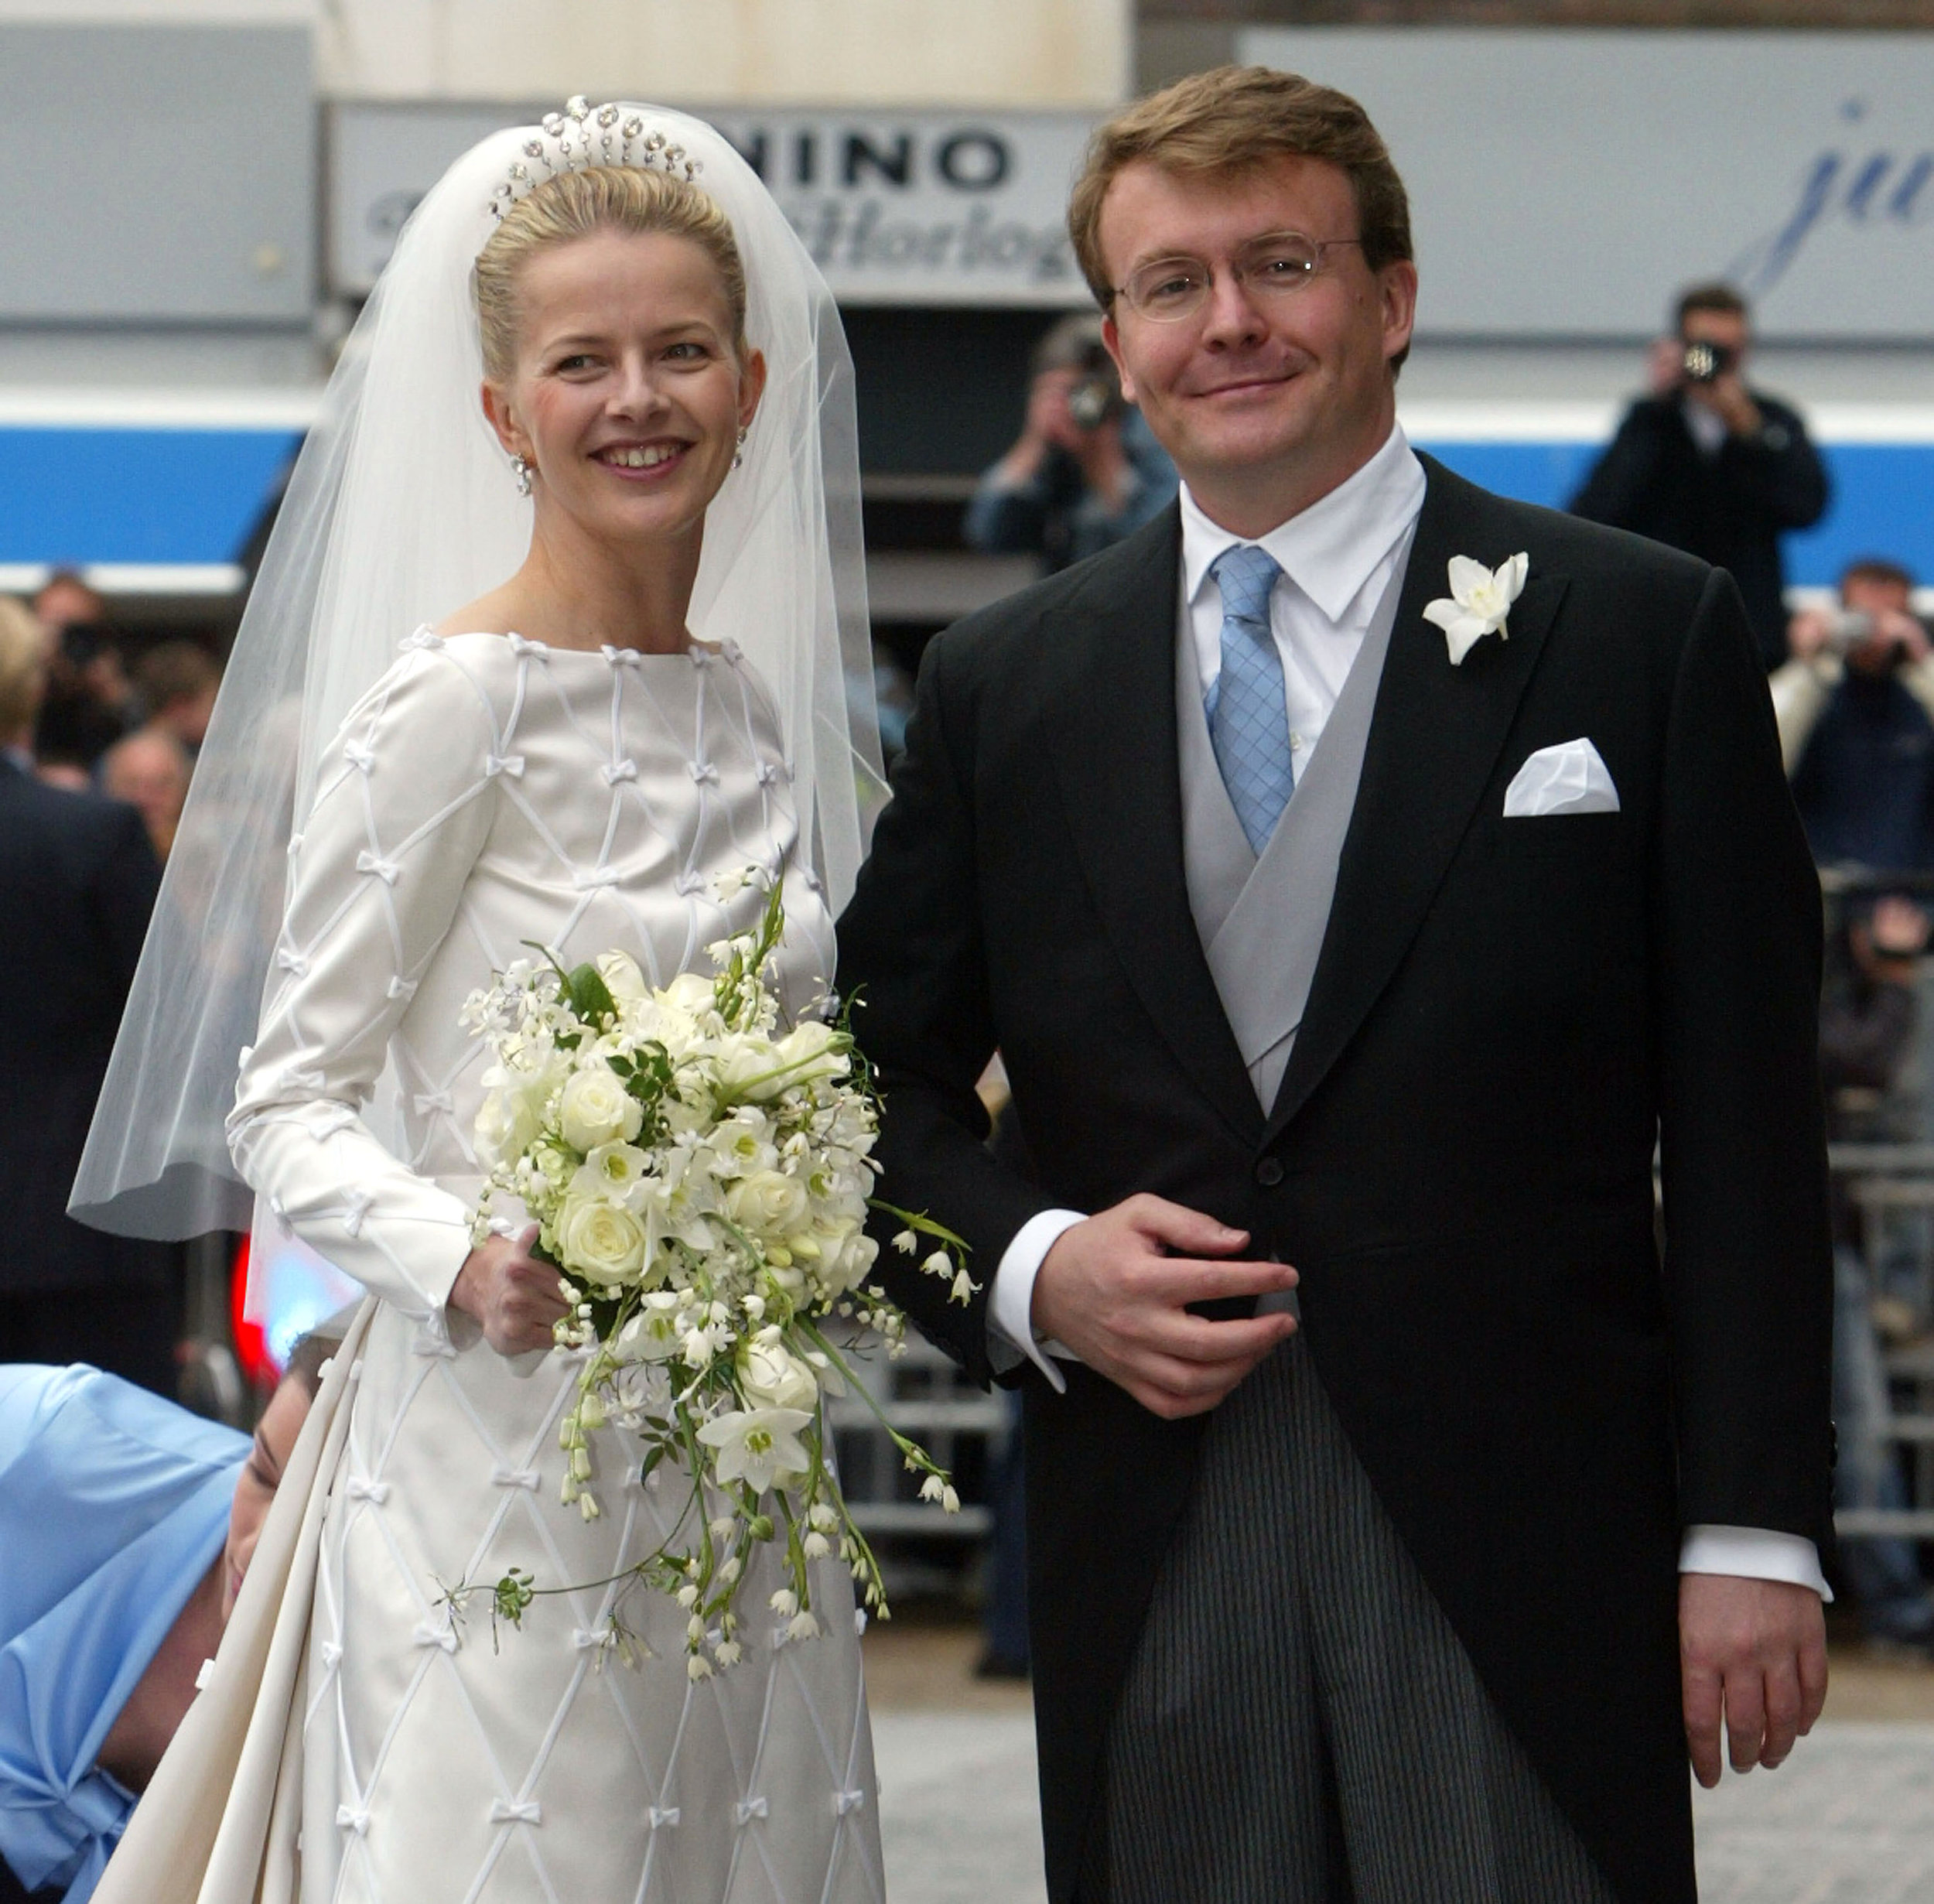 Am 24. April 2004 heiratete Prinz Friso seine große Liebe Mabel. © Getty Images